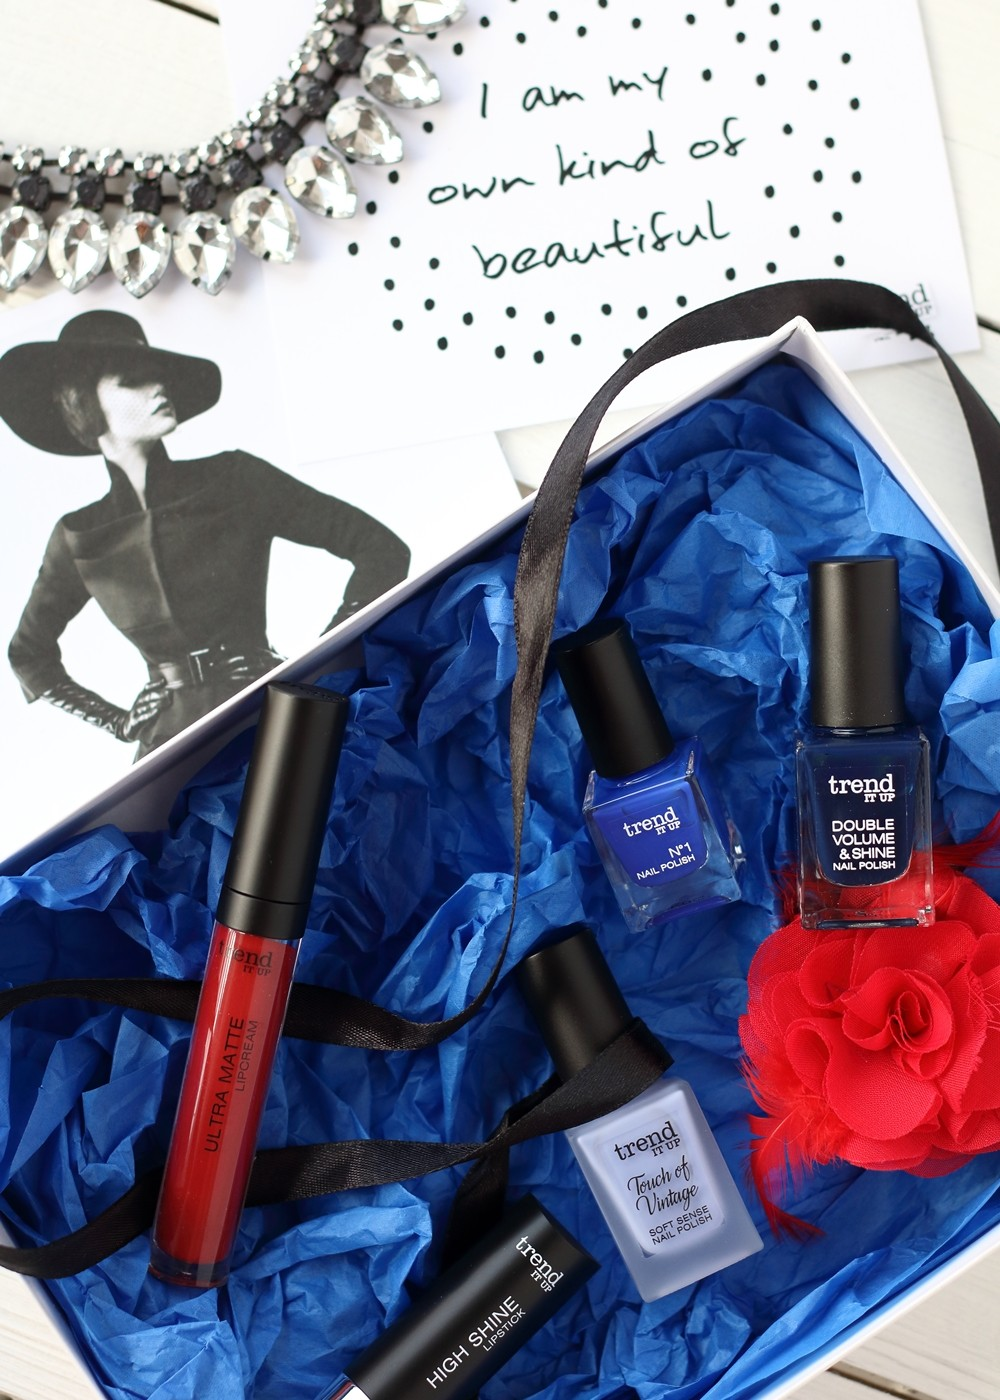 Trend it Up Box Bloggerevent rot blau Nagellack Lippenstift 3